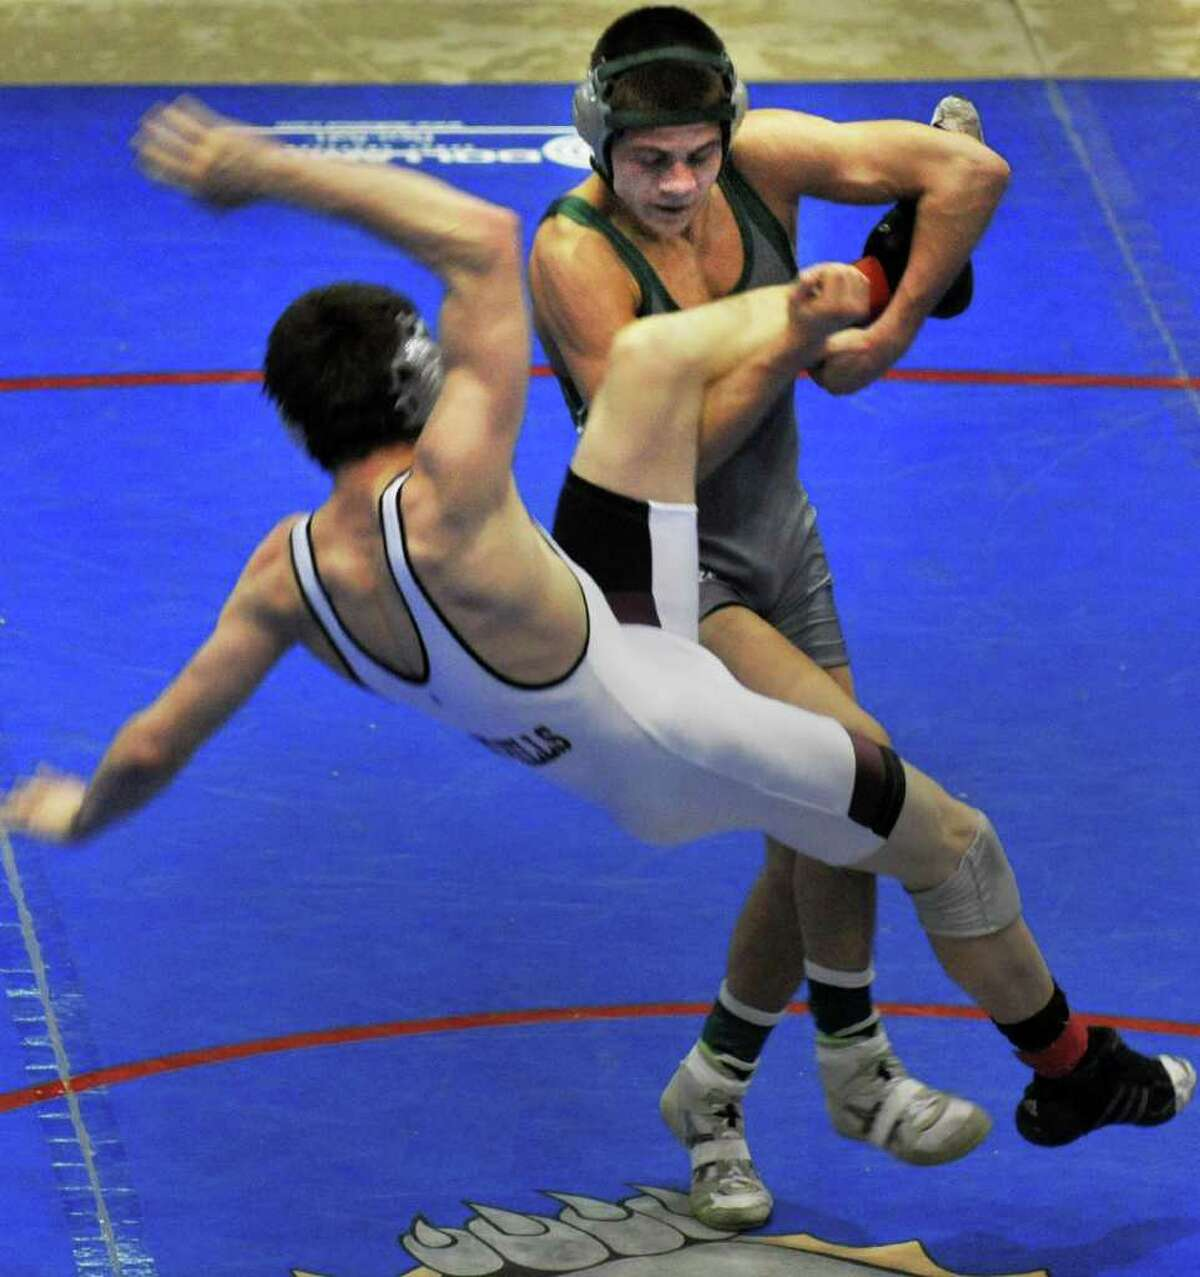 Shen's Nick Kelley up ends Burnt Hills' Joey Butler in the 132 lb. match in the finals for the Section II wrestling tournament at the Glens Falls Civic Center Saturday Feb. 11, 2012. (John Carl D'Annibale / Times Union)